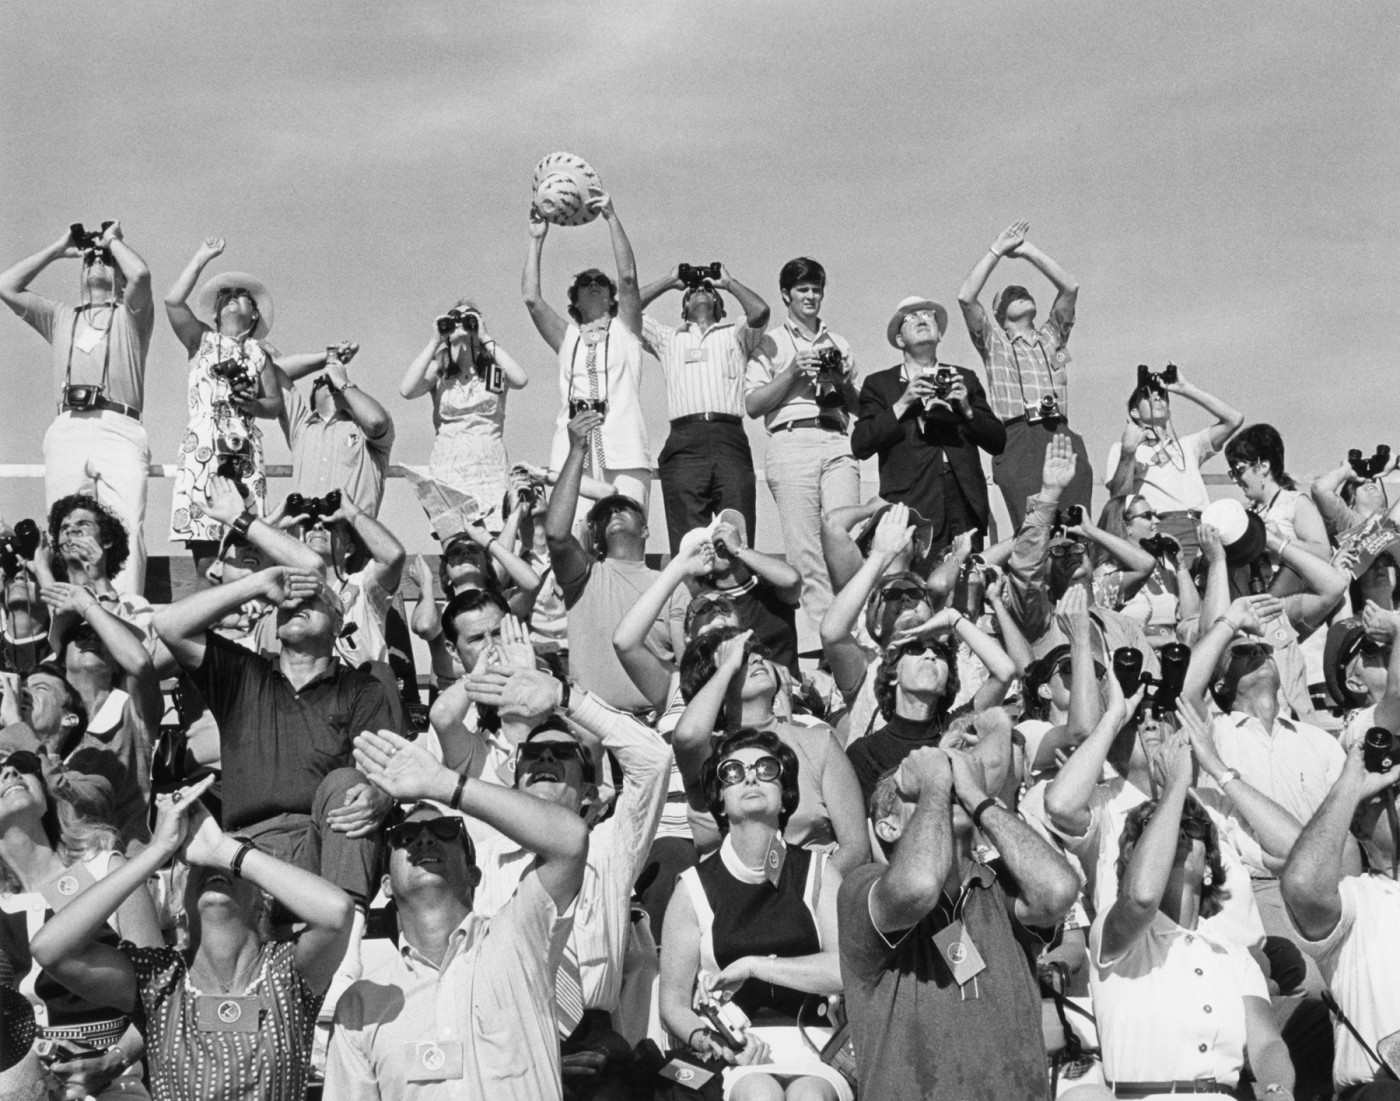 National Aeronautics and Space Administration, </span><span><em>Spectators at the launch of Apollo 15. July 26, 1971.</em>